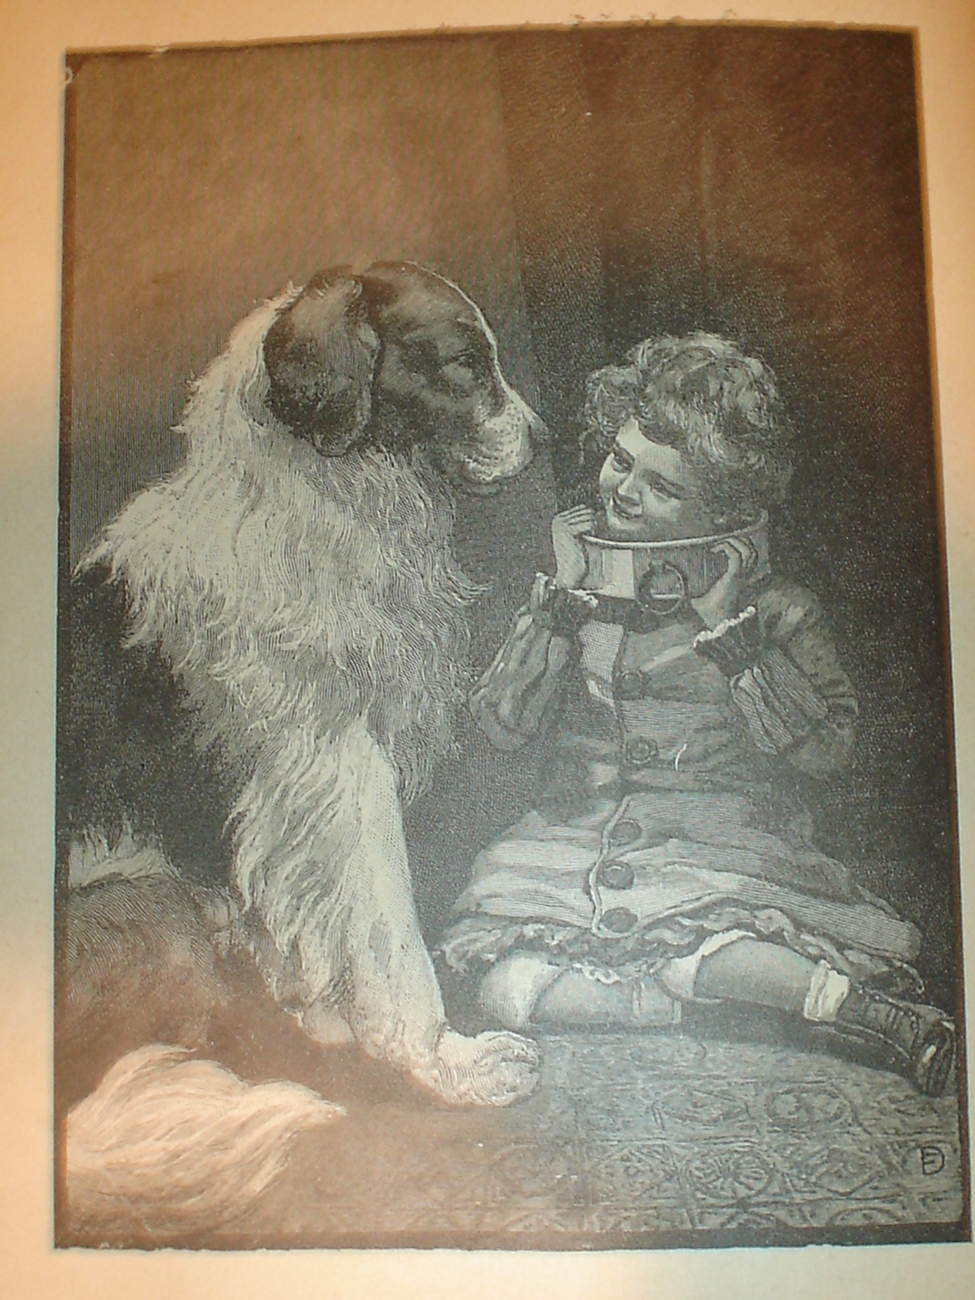 1899 Print of a Dog and a Child in Bondage